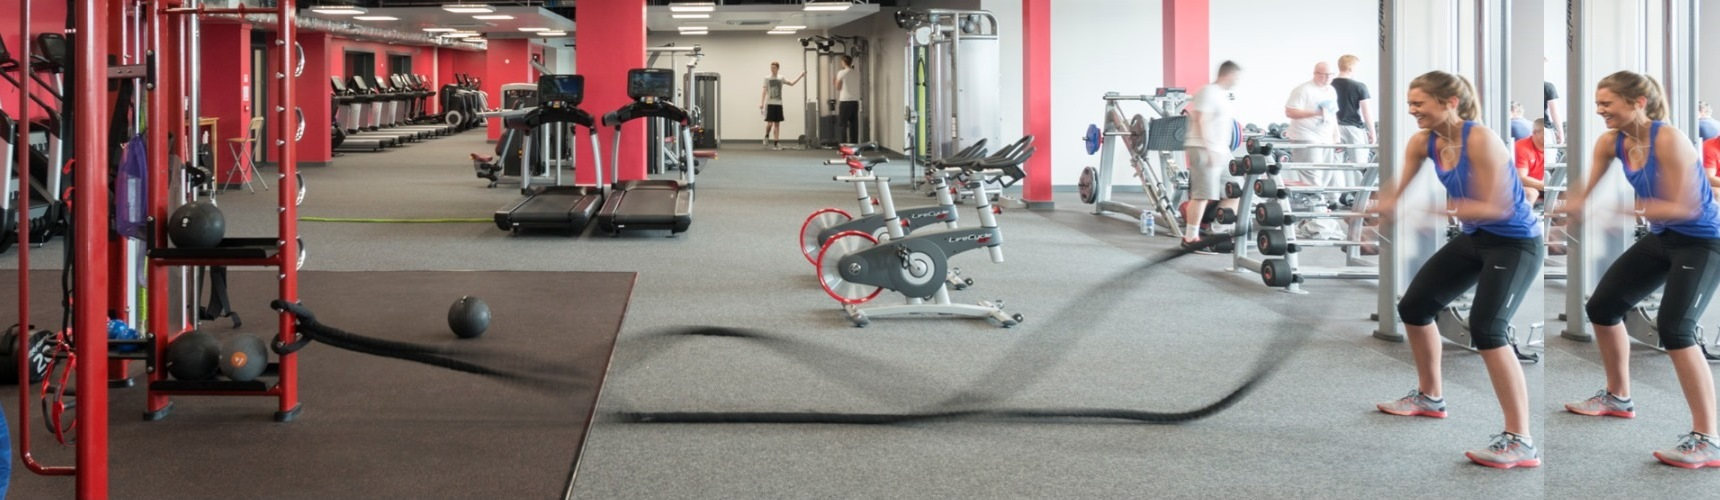 Web-Banner-Into-Fitness-3